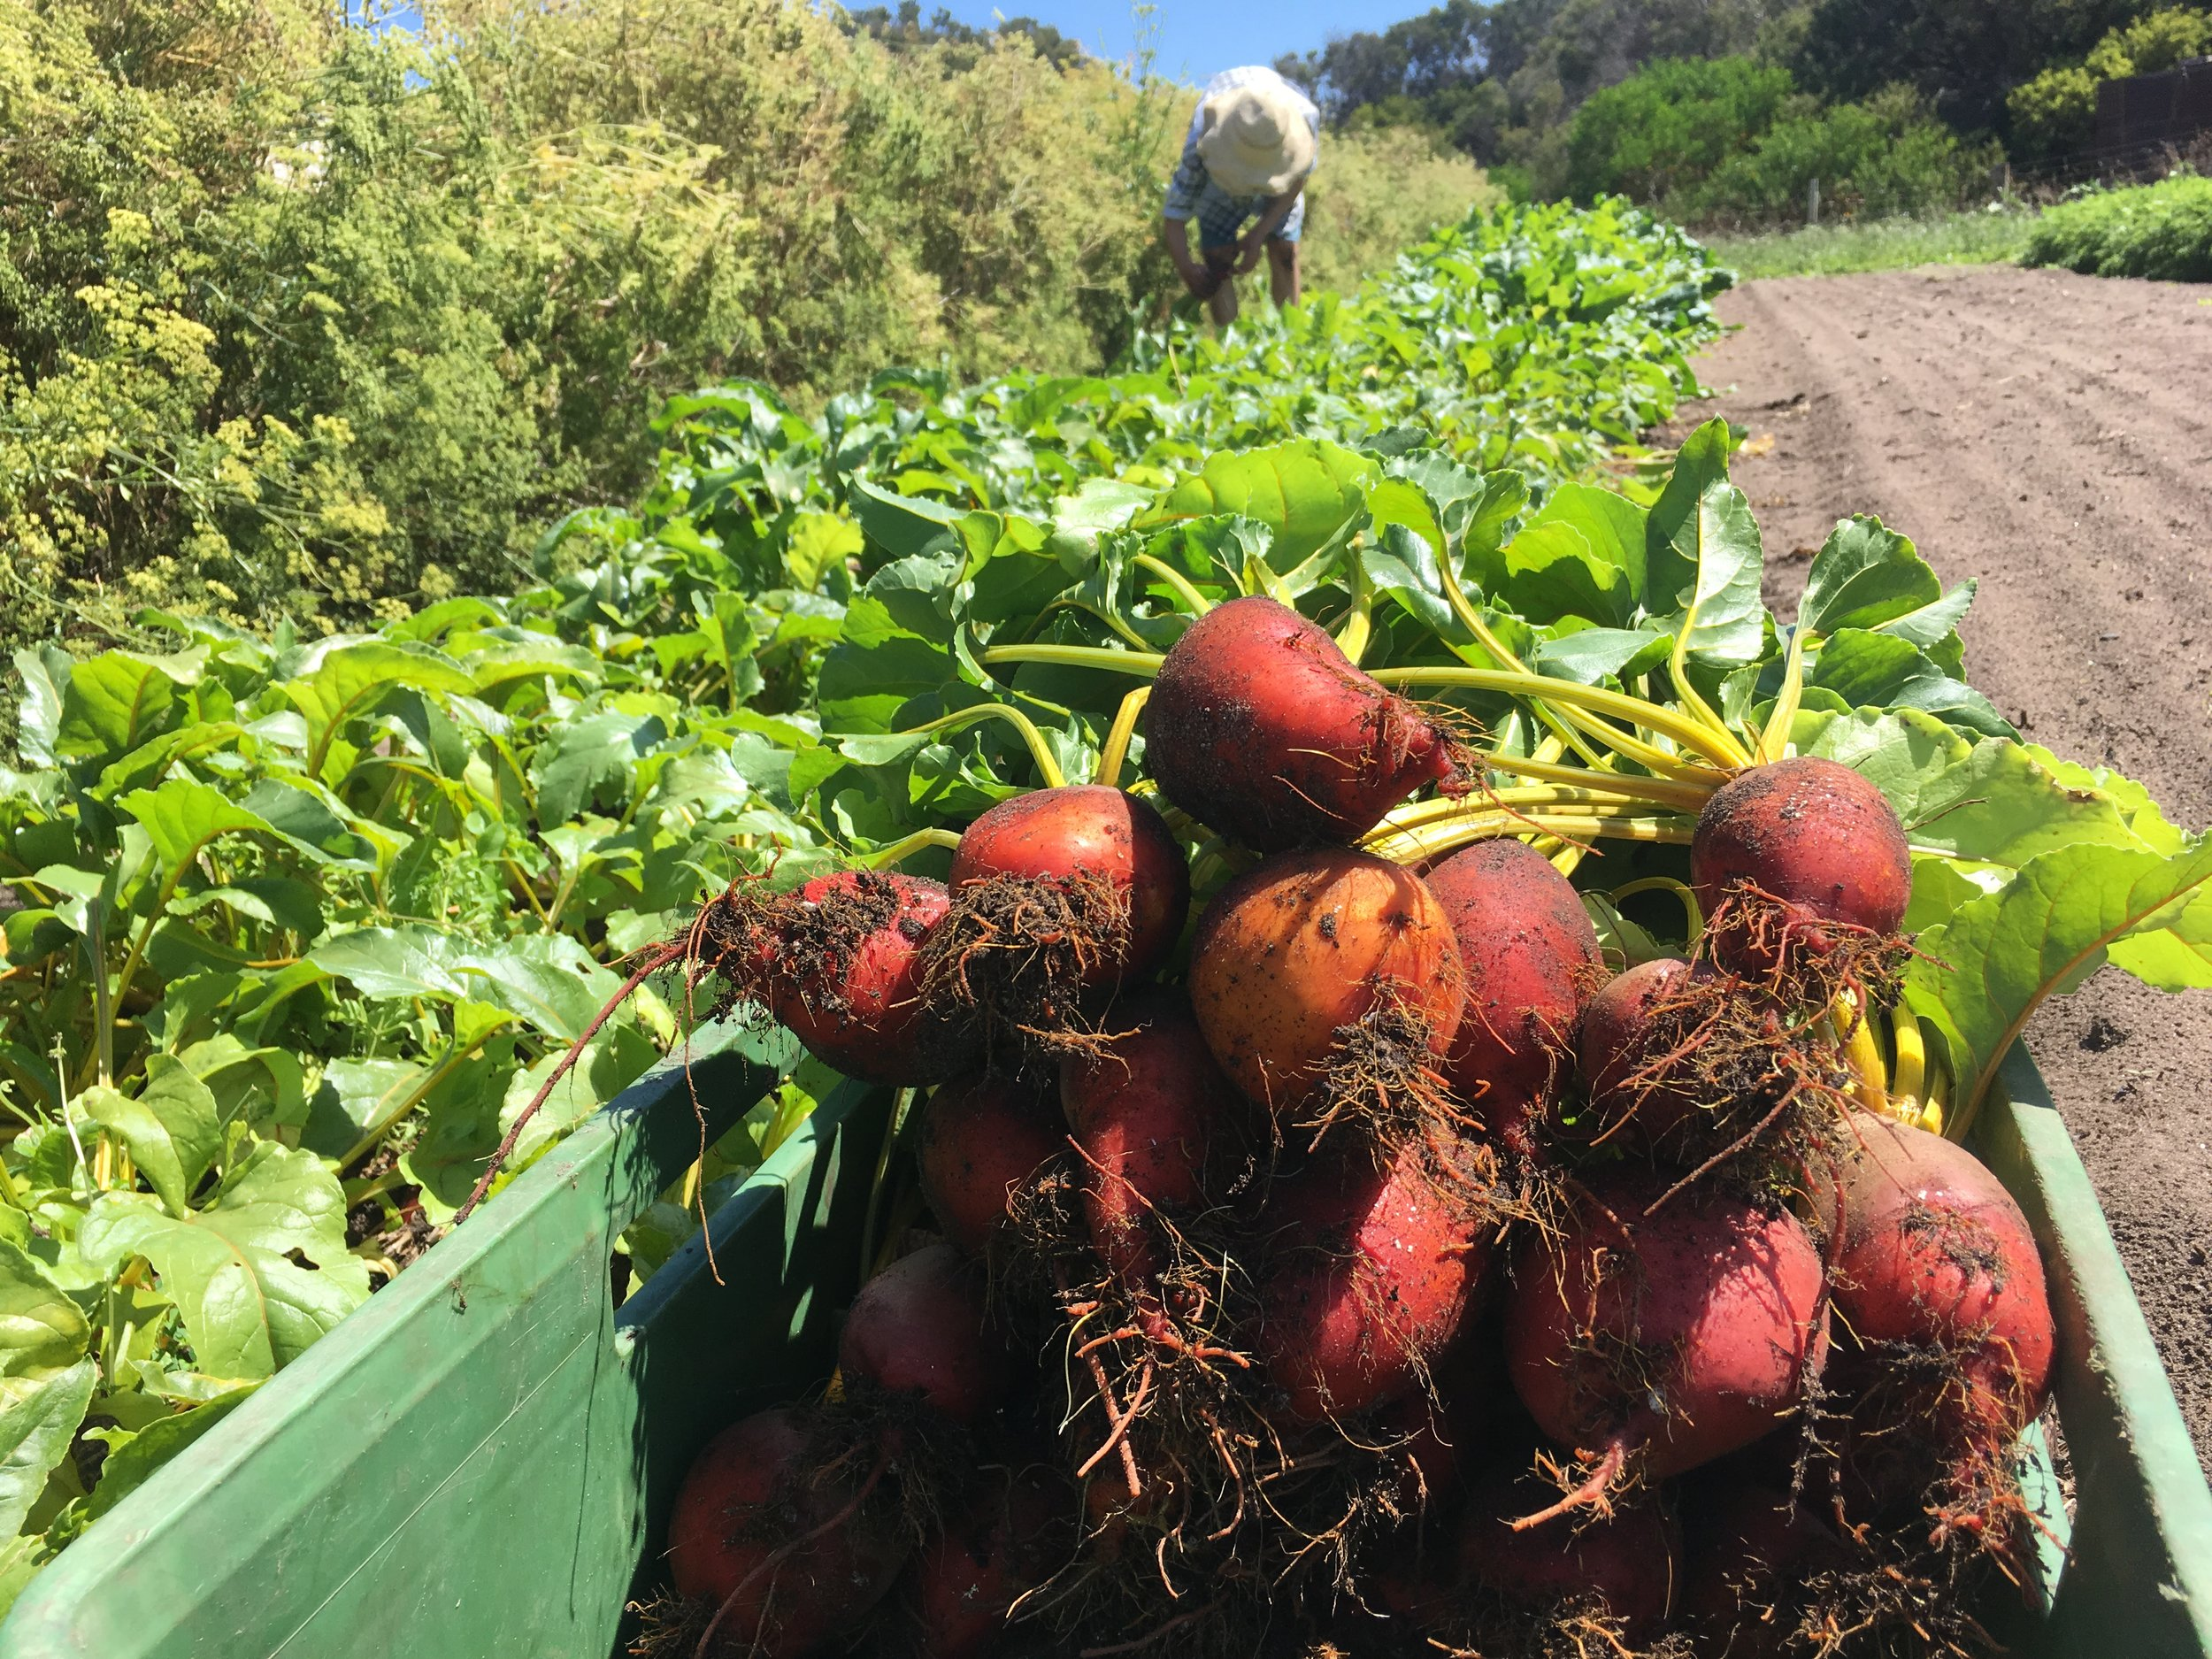 New varieties of beetroot are grown and sent to restaurants.